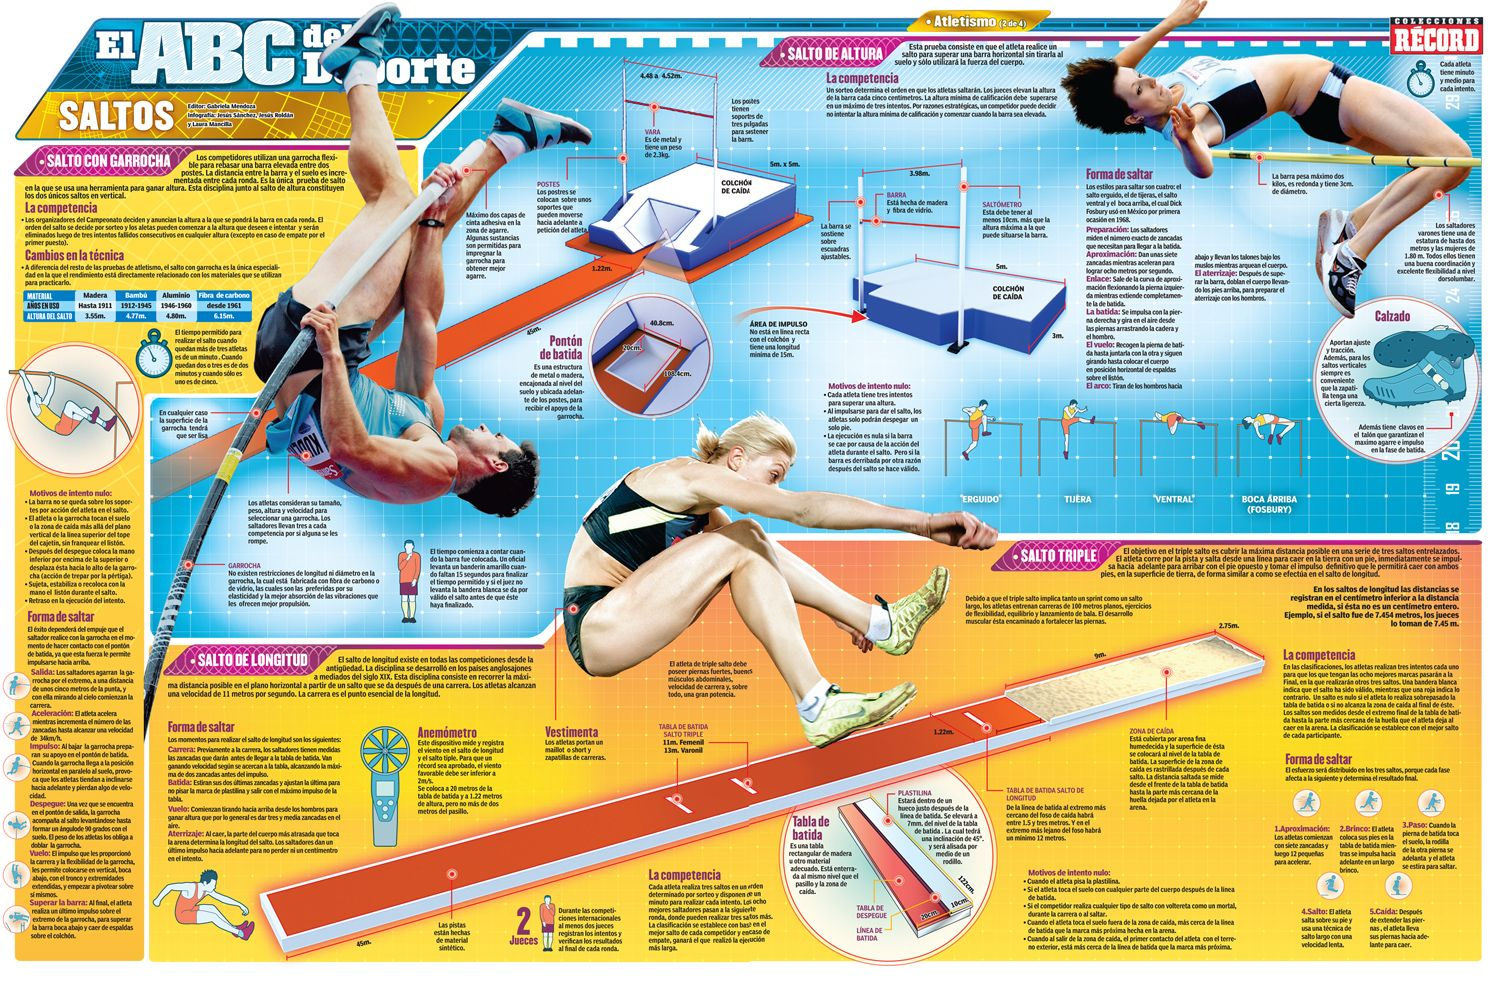 El ABC del Deporte: Saltos | hubert | Pinterest | Infographics and ...